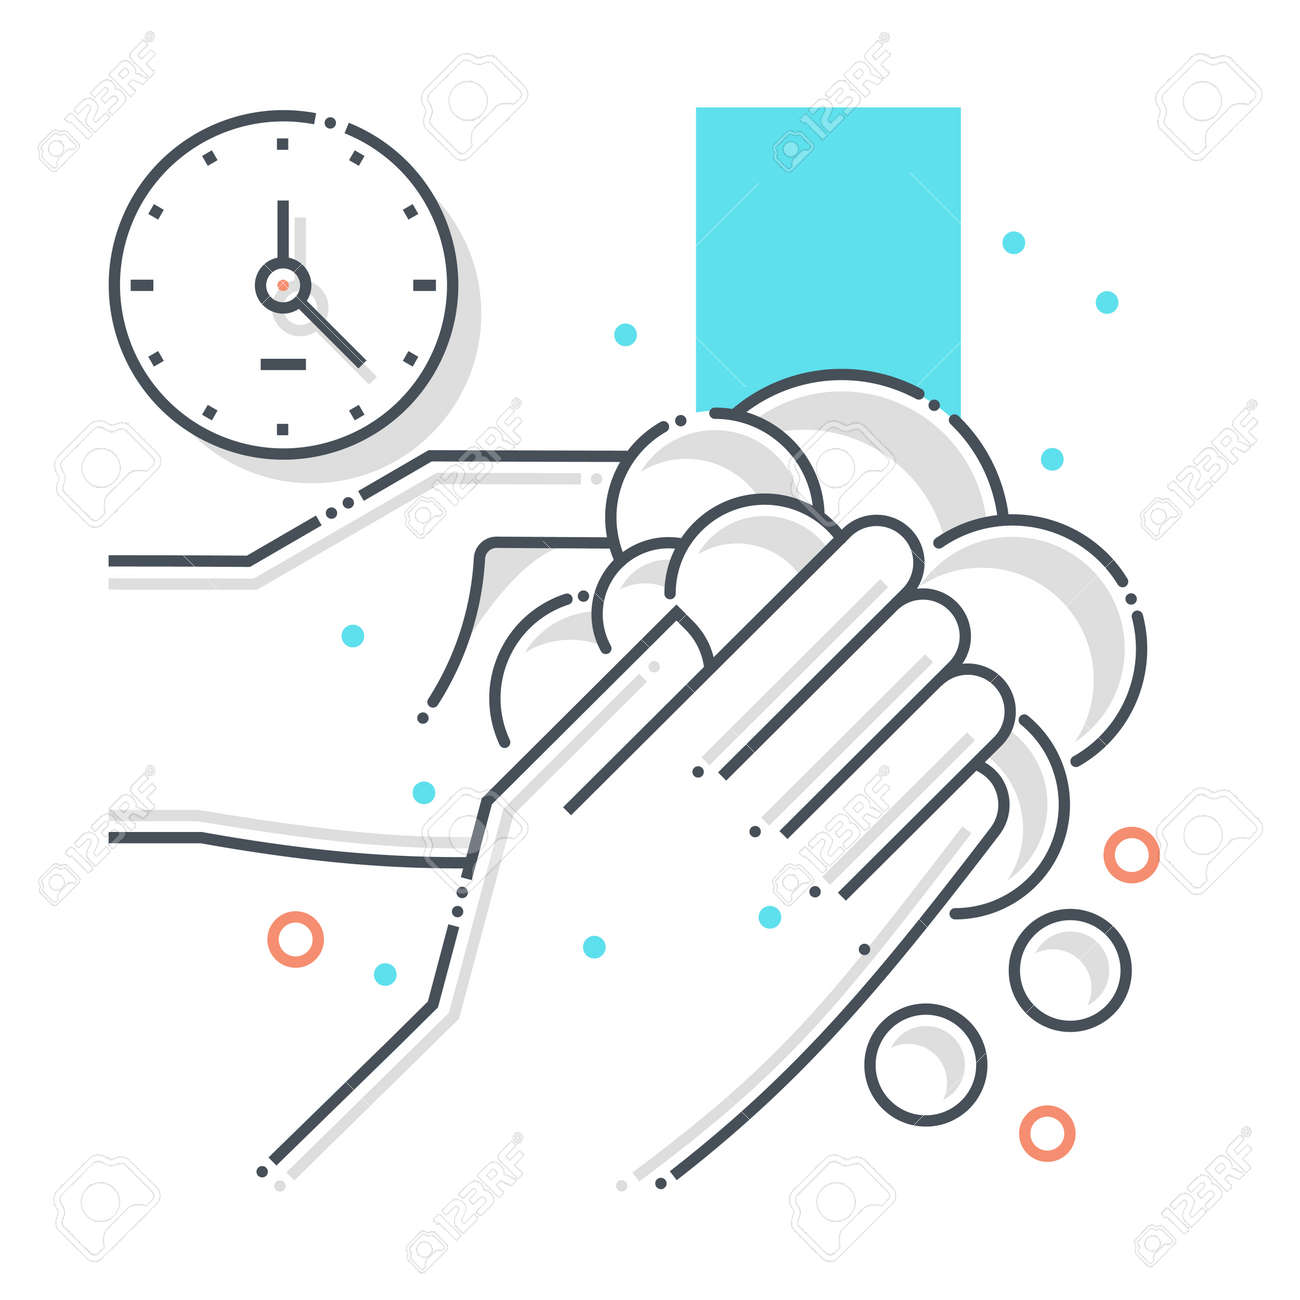 Cleaning related color line vector icon, illustration. The icon is about hand wash, soap, hands, water, contamination, epidemic, duration. The composition is infinitely scalable. - 163698266